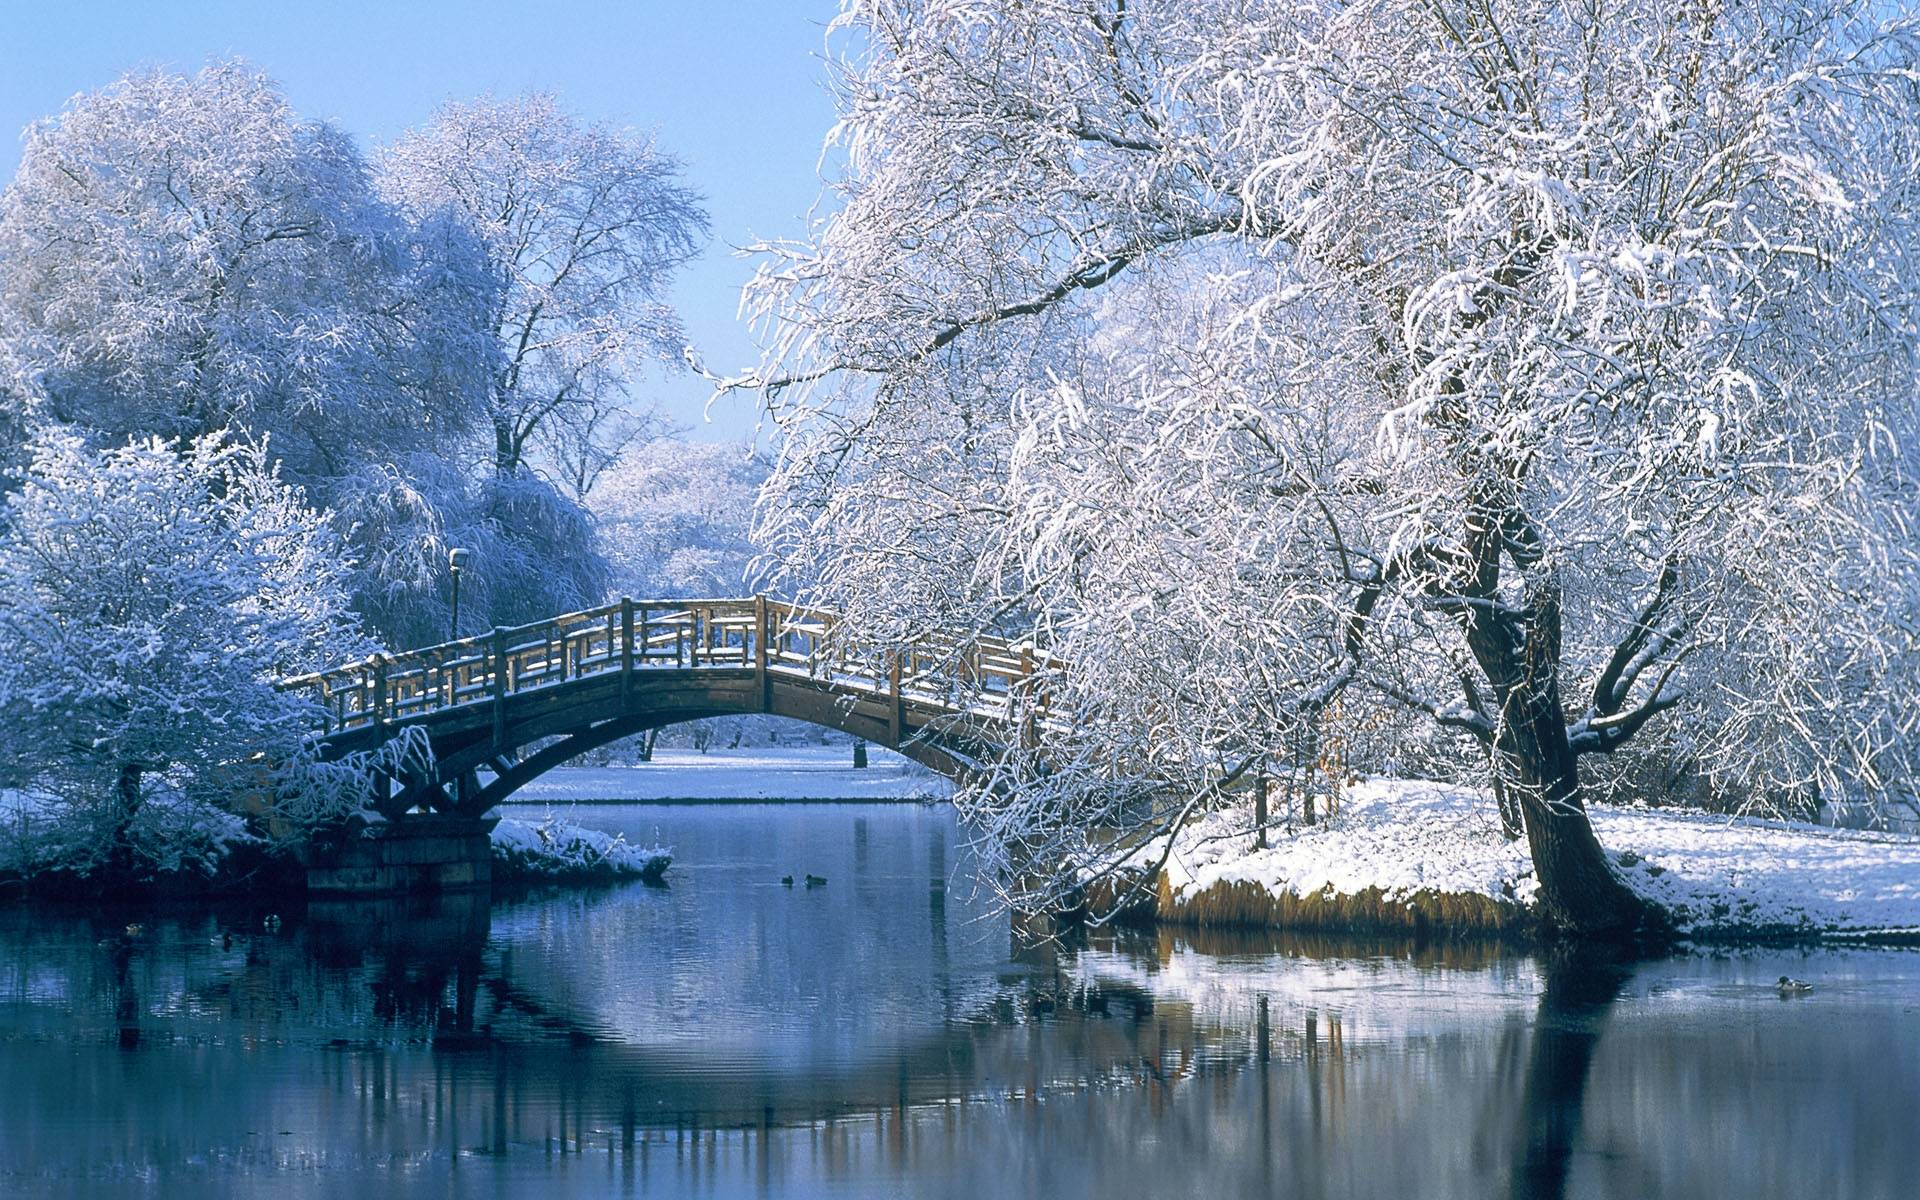 Winter Scenery Wallpaper